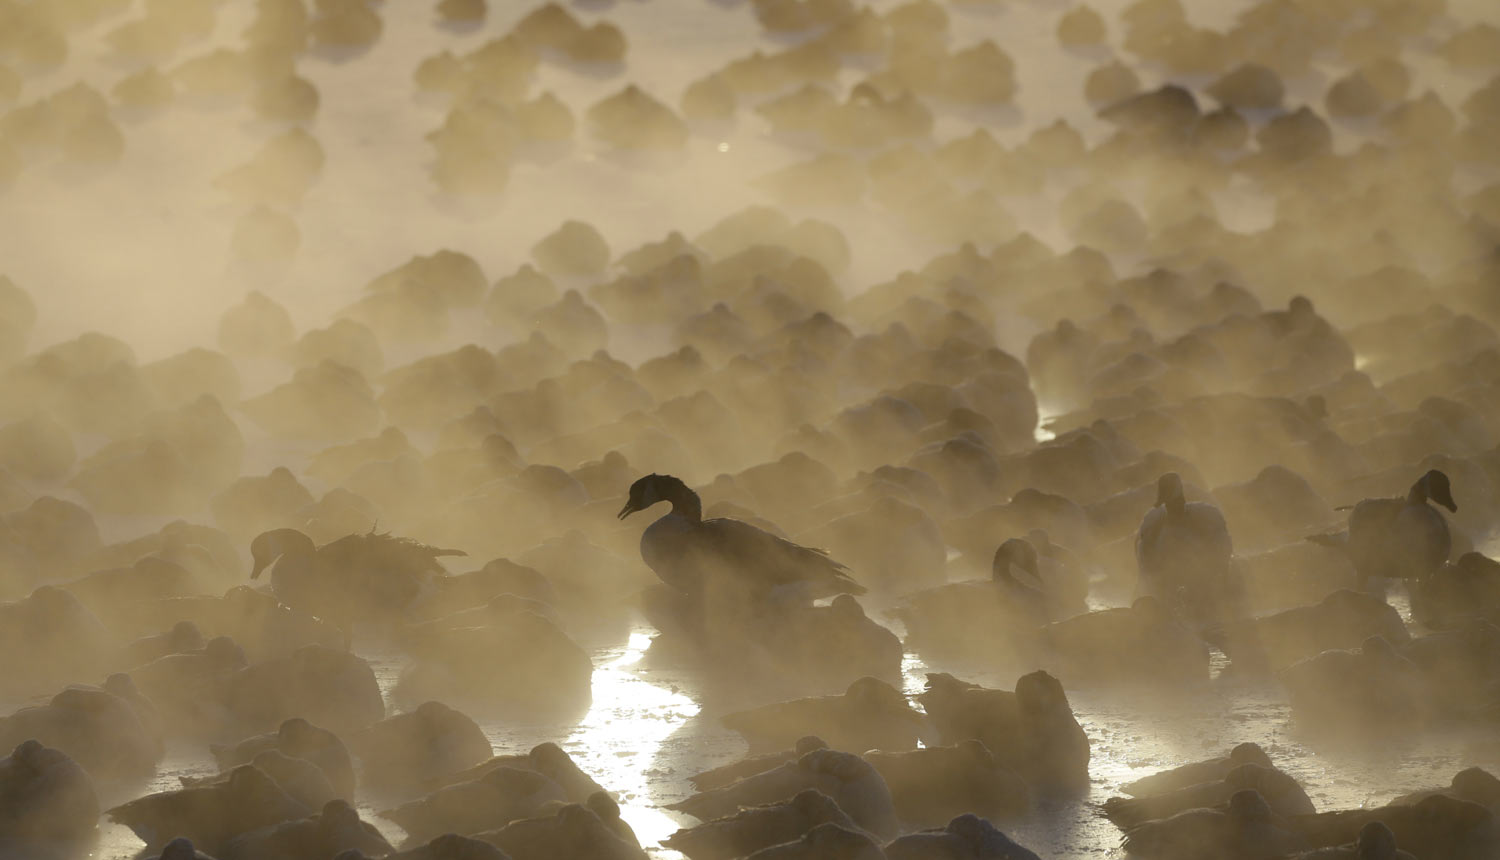 Geese huddle together as the sun rises at the harbor in Port Washington, Wis., on Wednesday, Jan. 30, 2019. A deadly arctic deep freeze enveloped the Midwest with record-breaking temperatures. (AP Photo/Jeffrey Phelps)